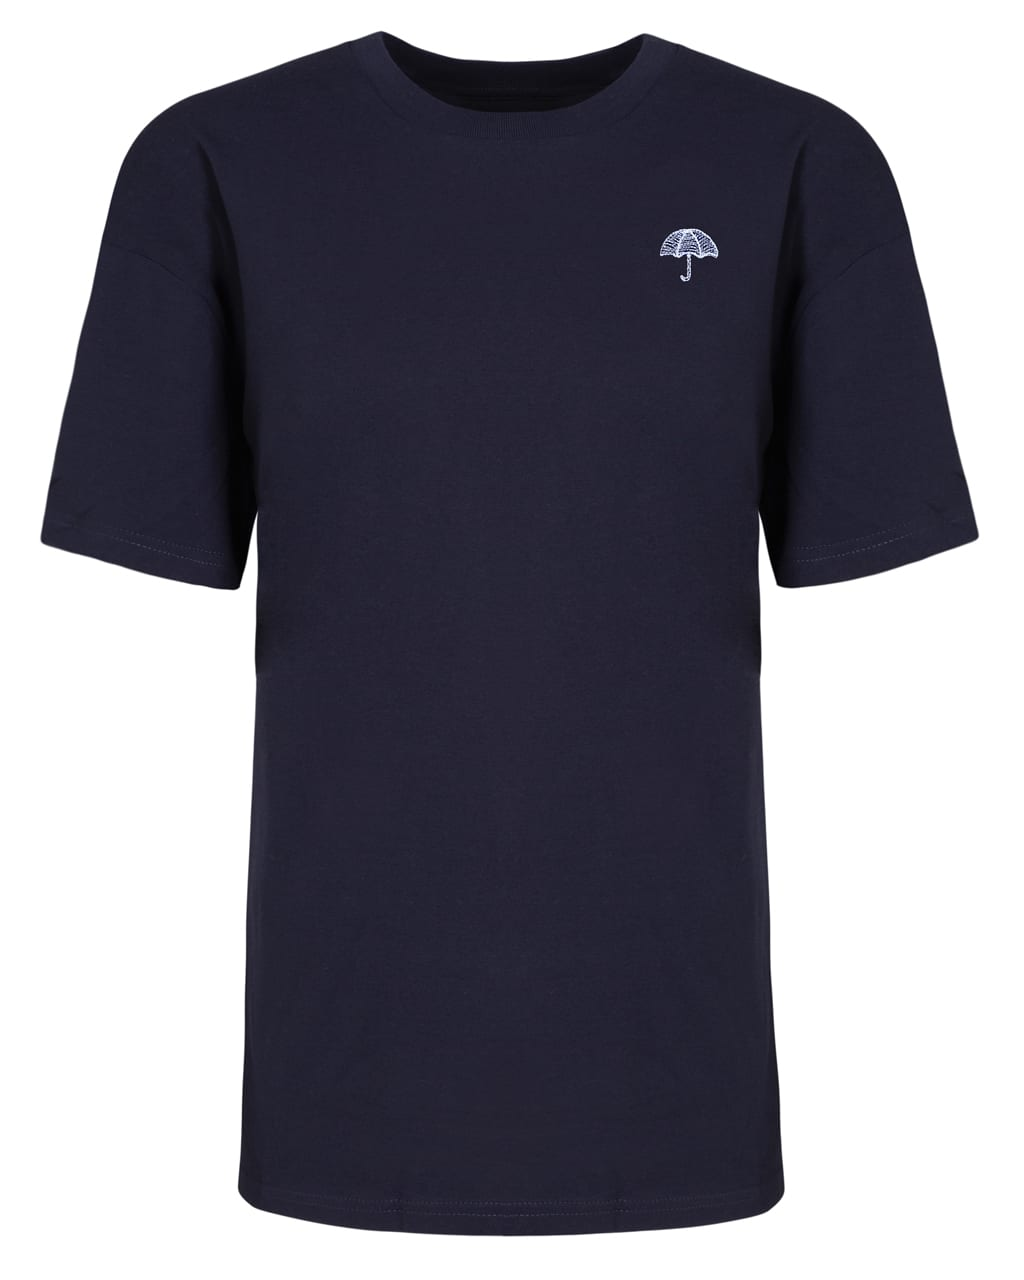 Umbrella Embroidered T-Shirt Navy Men